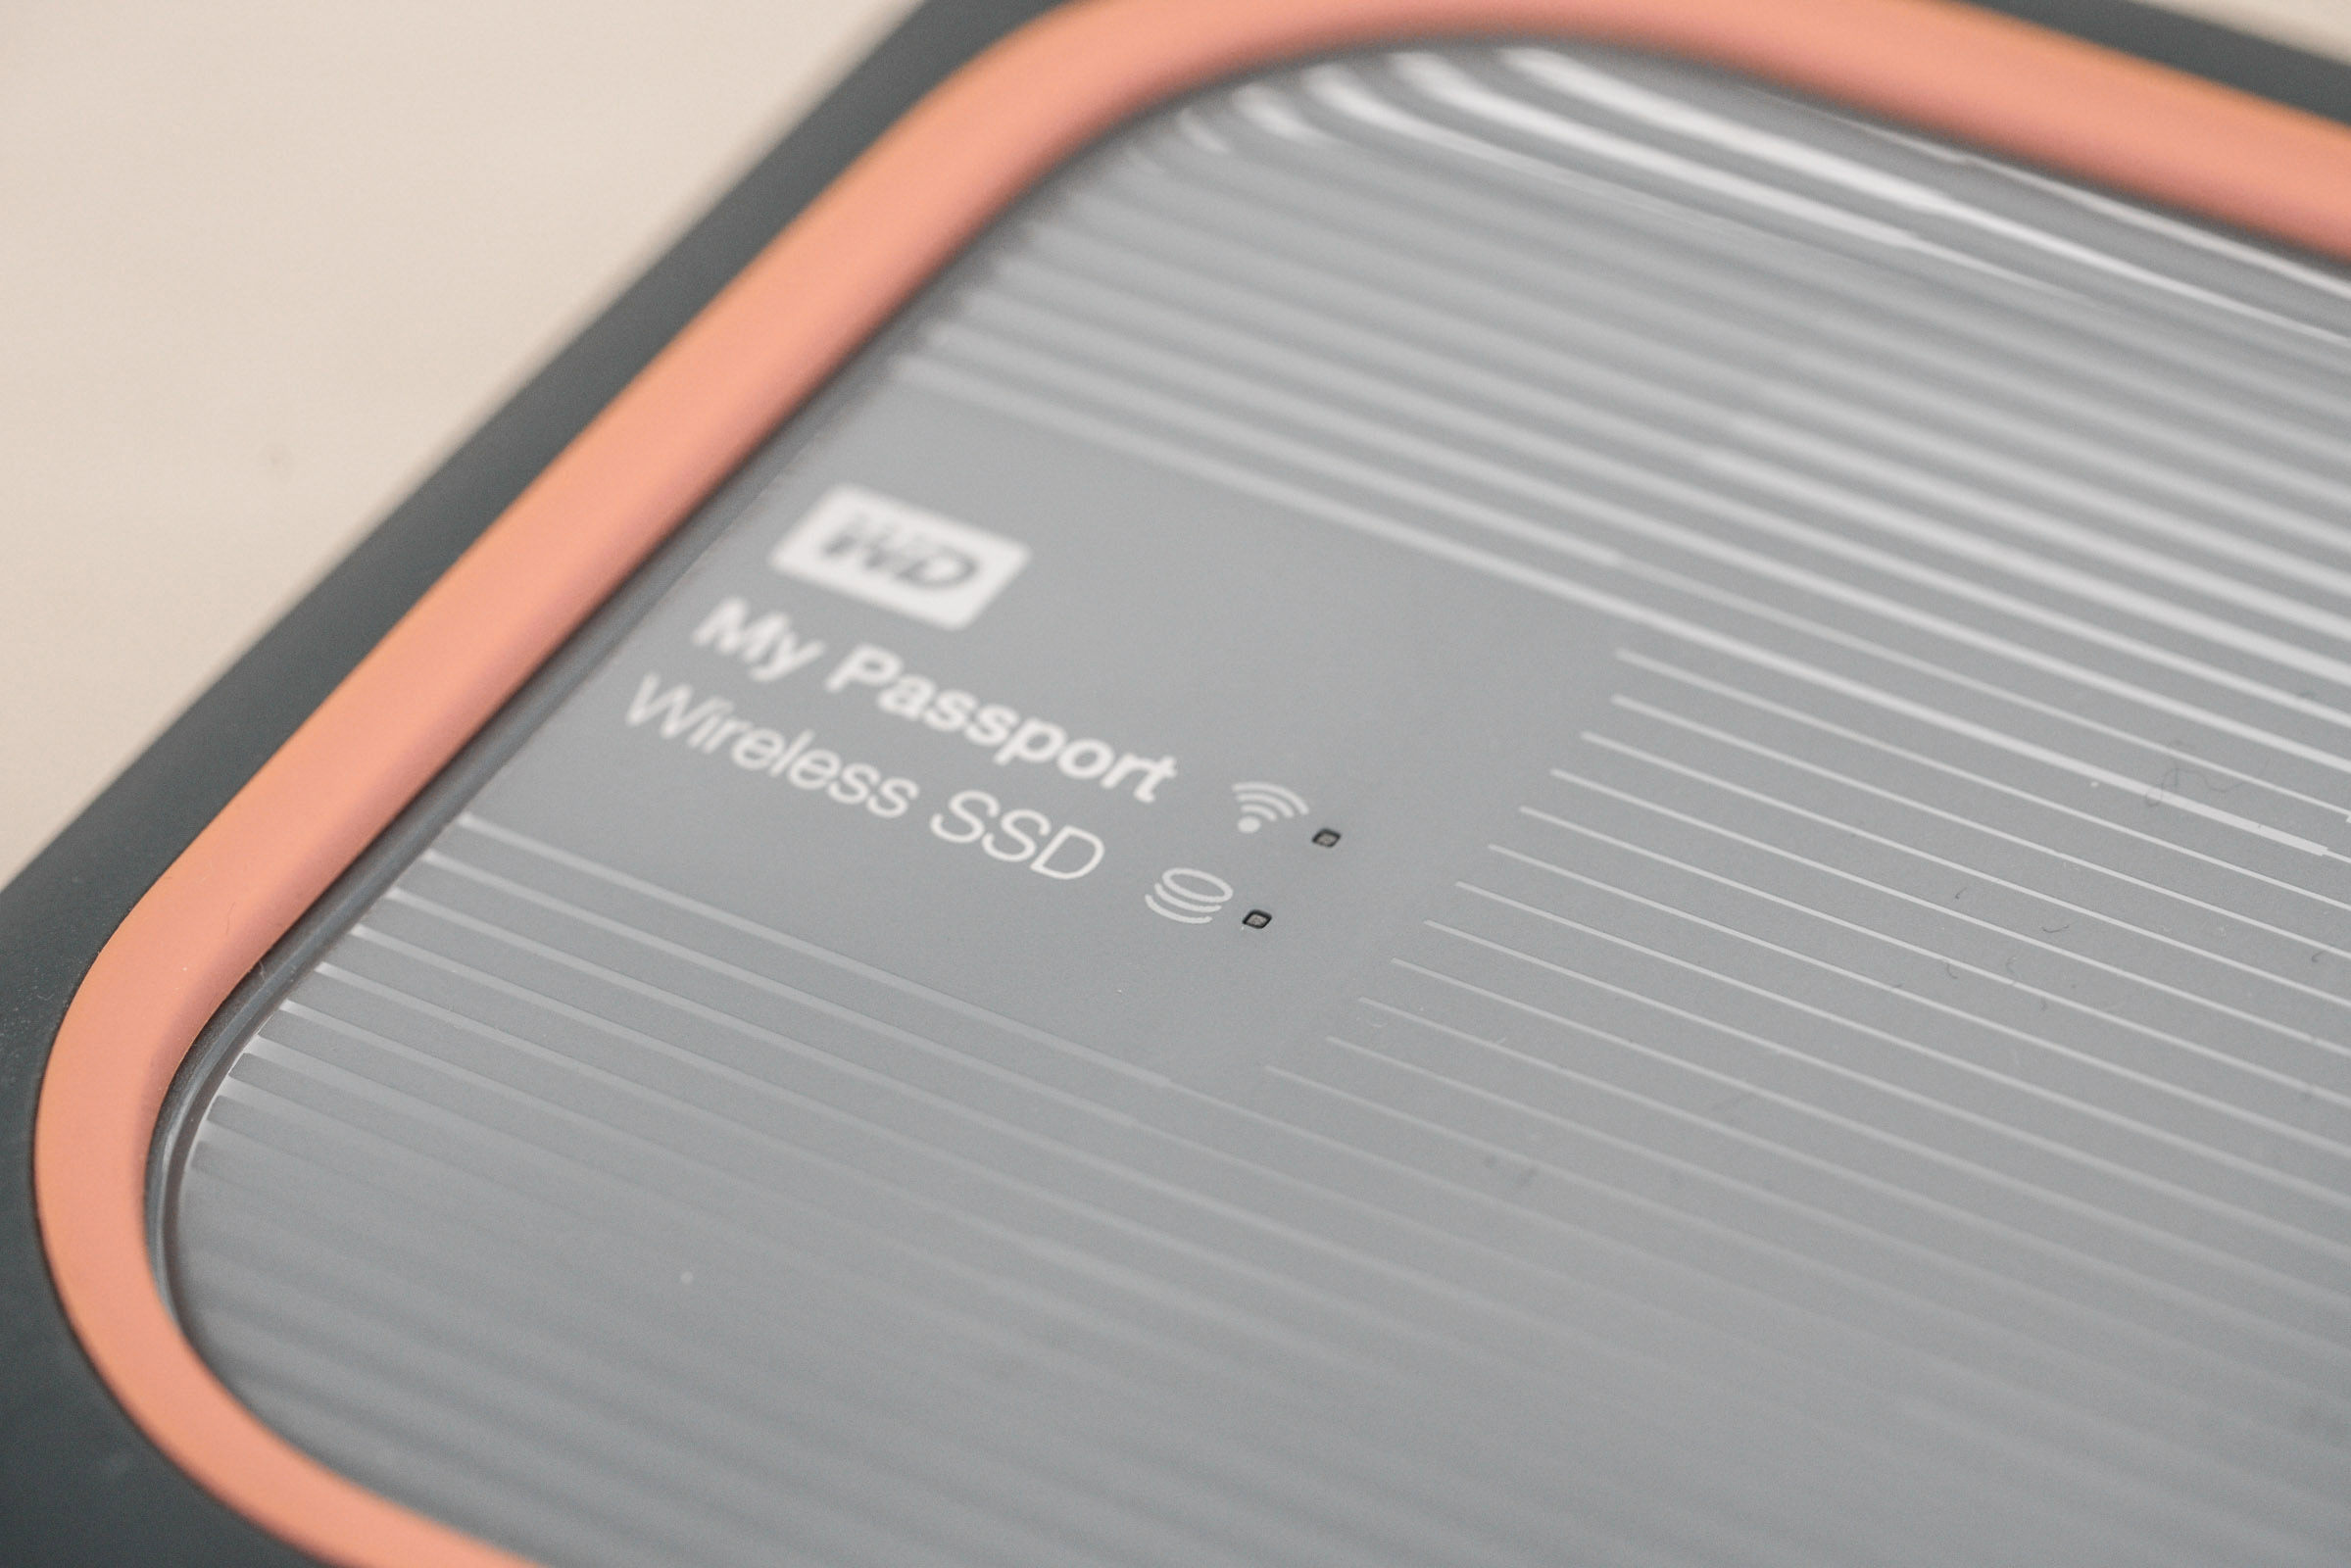 WD My Passport Wireless SSD Review | Leave The Laptop At Home